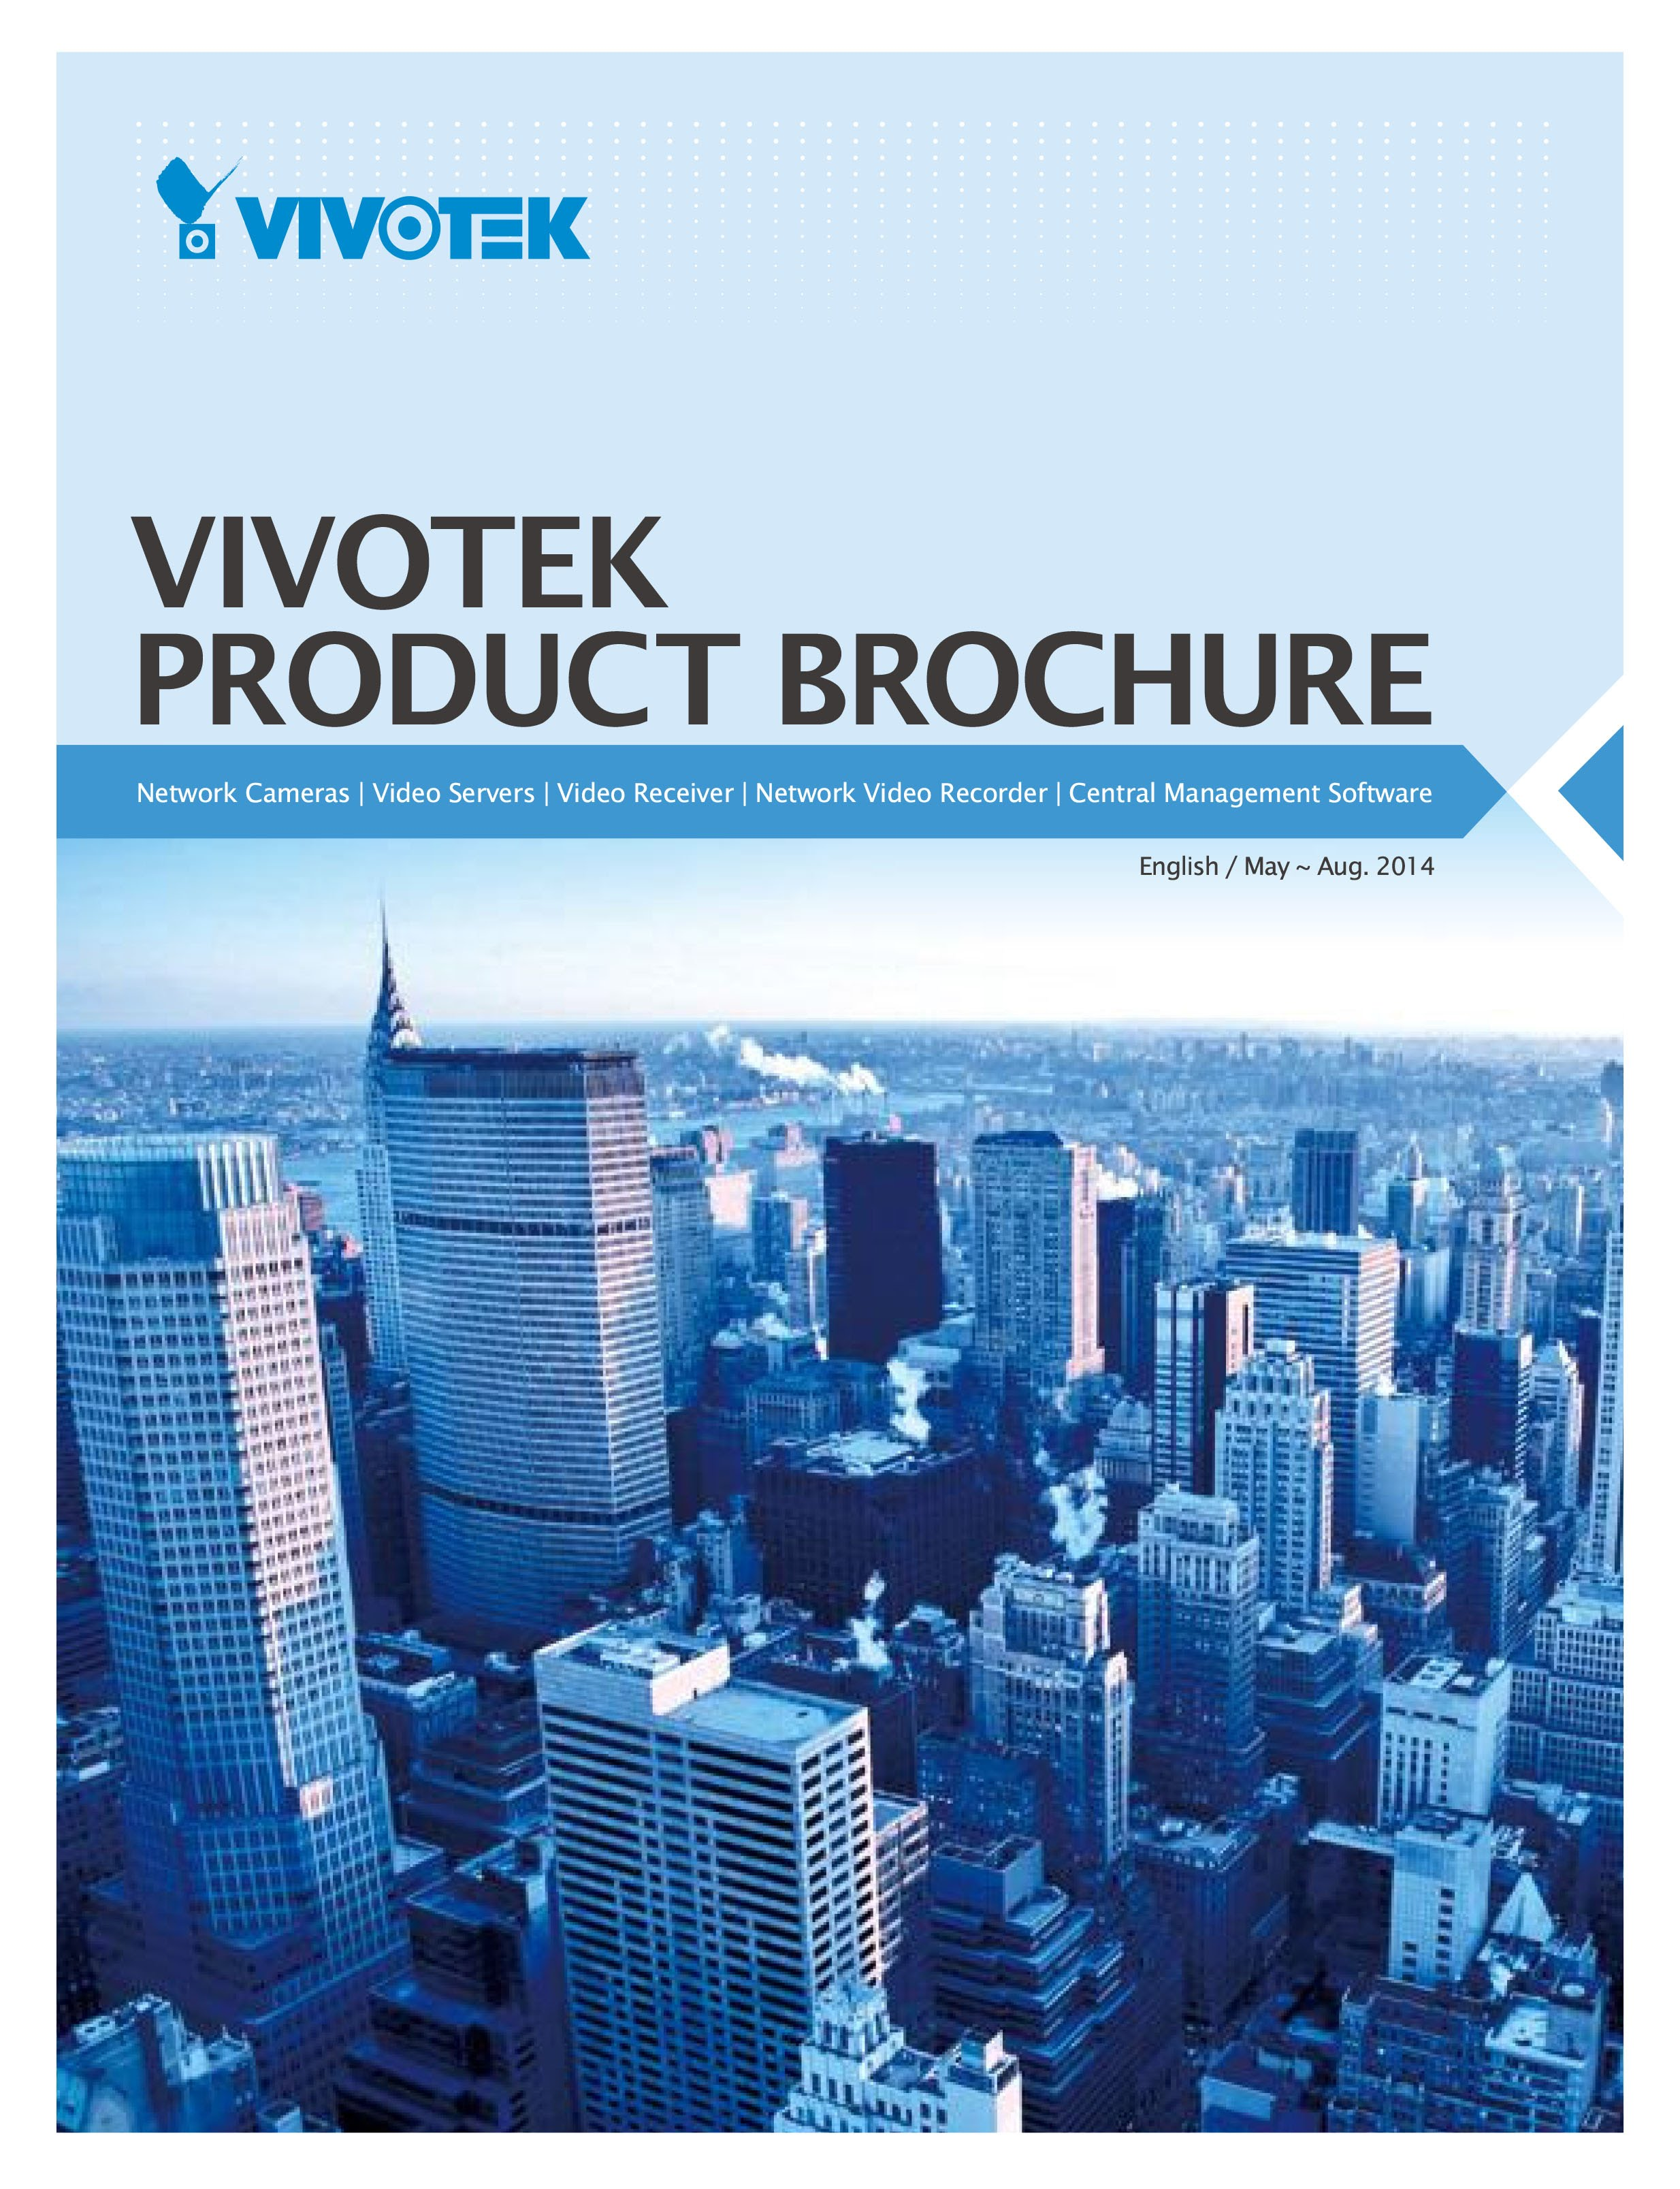 http://download.vivotek.com/downloadfile/downloads/brochure/brochure_en.pdf